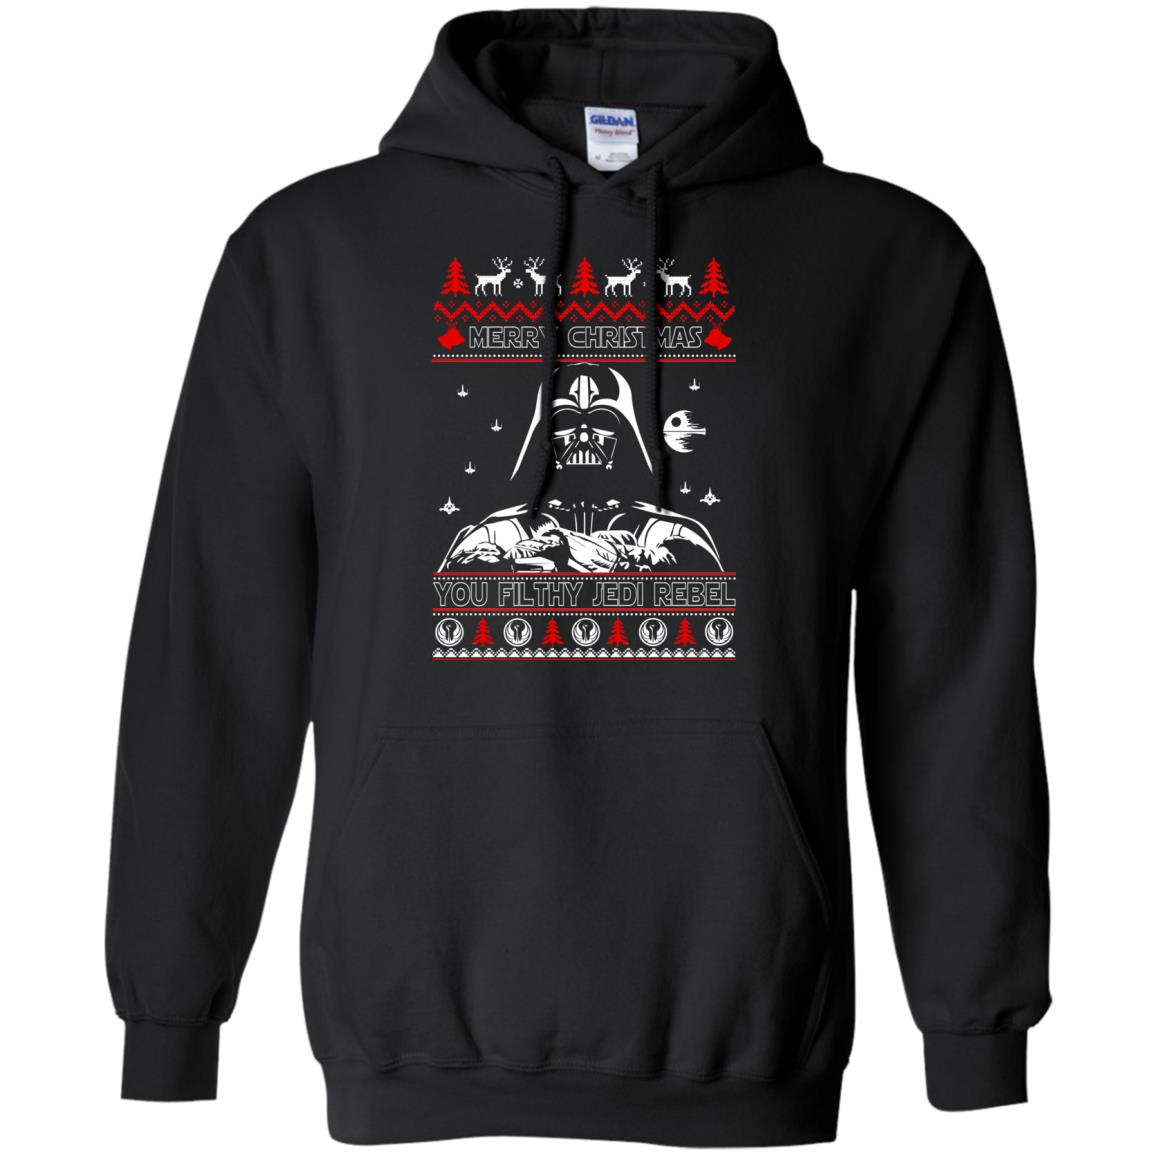 image 1786 - Darth Vader Merry Christmas You Filthy Jedi Rebel Ugly Sweater, Shirt